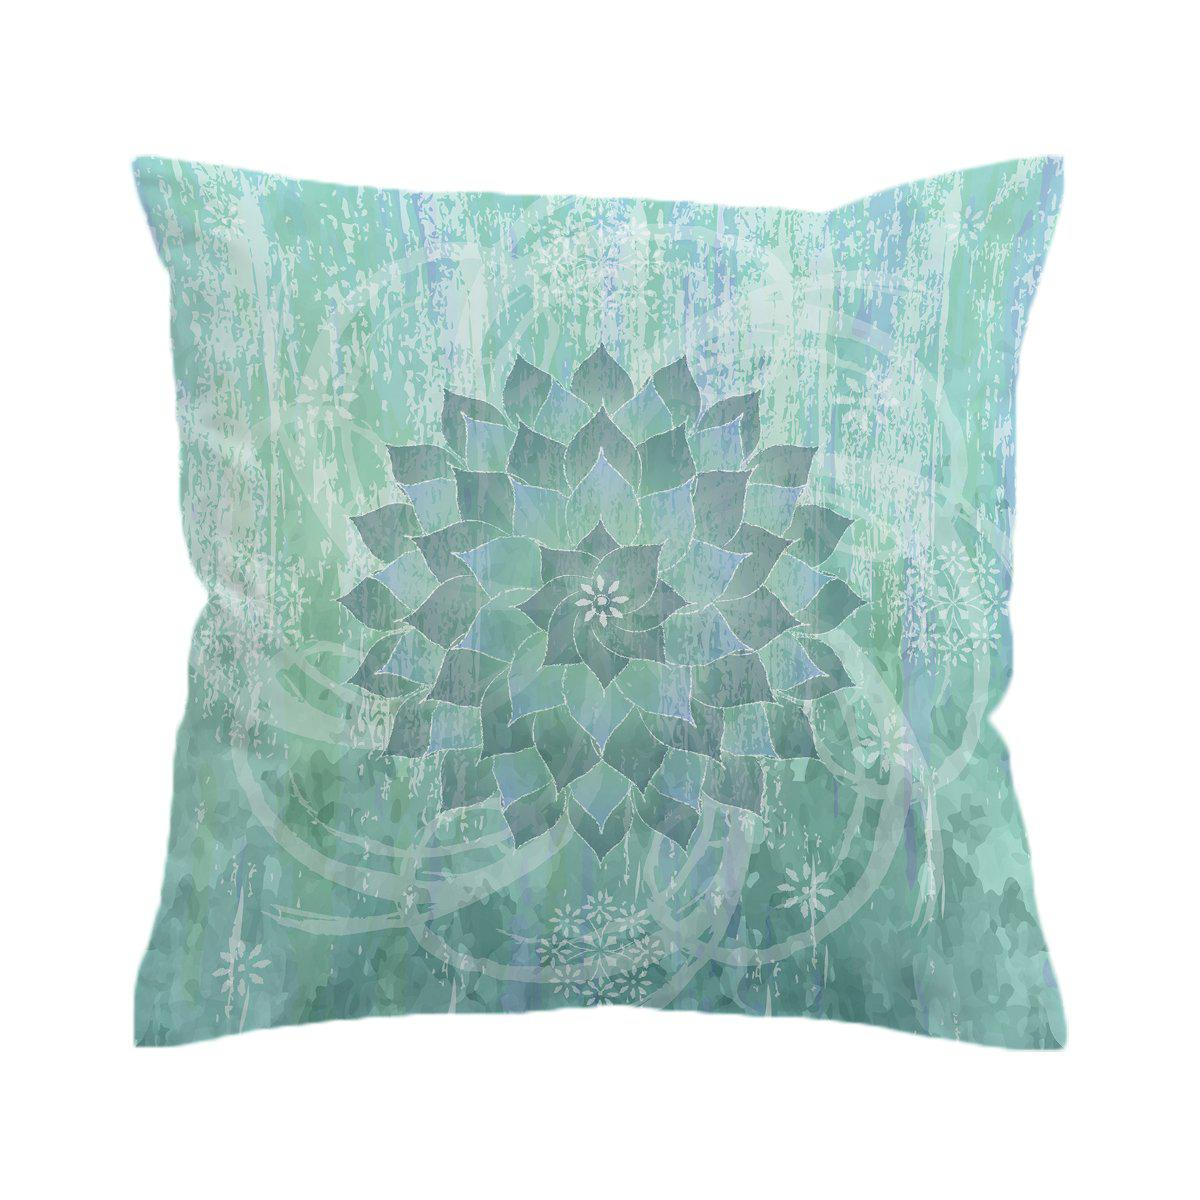 The Ocean Hues Pillow Cover-Coastal Passion